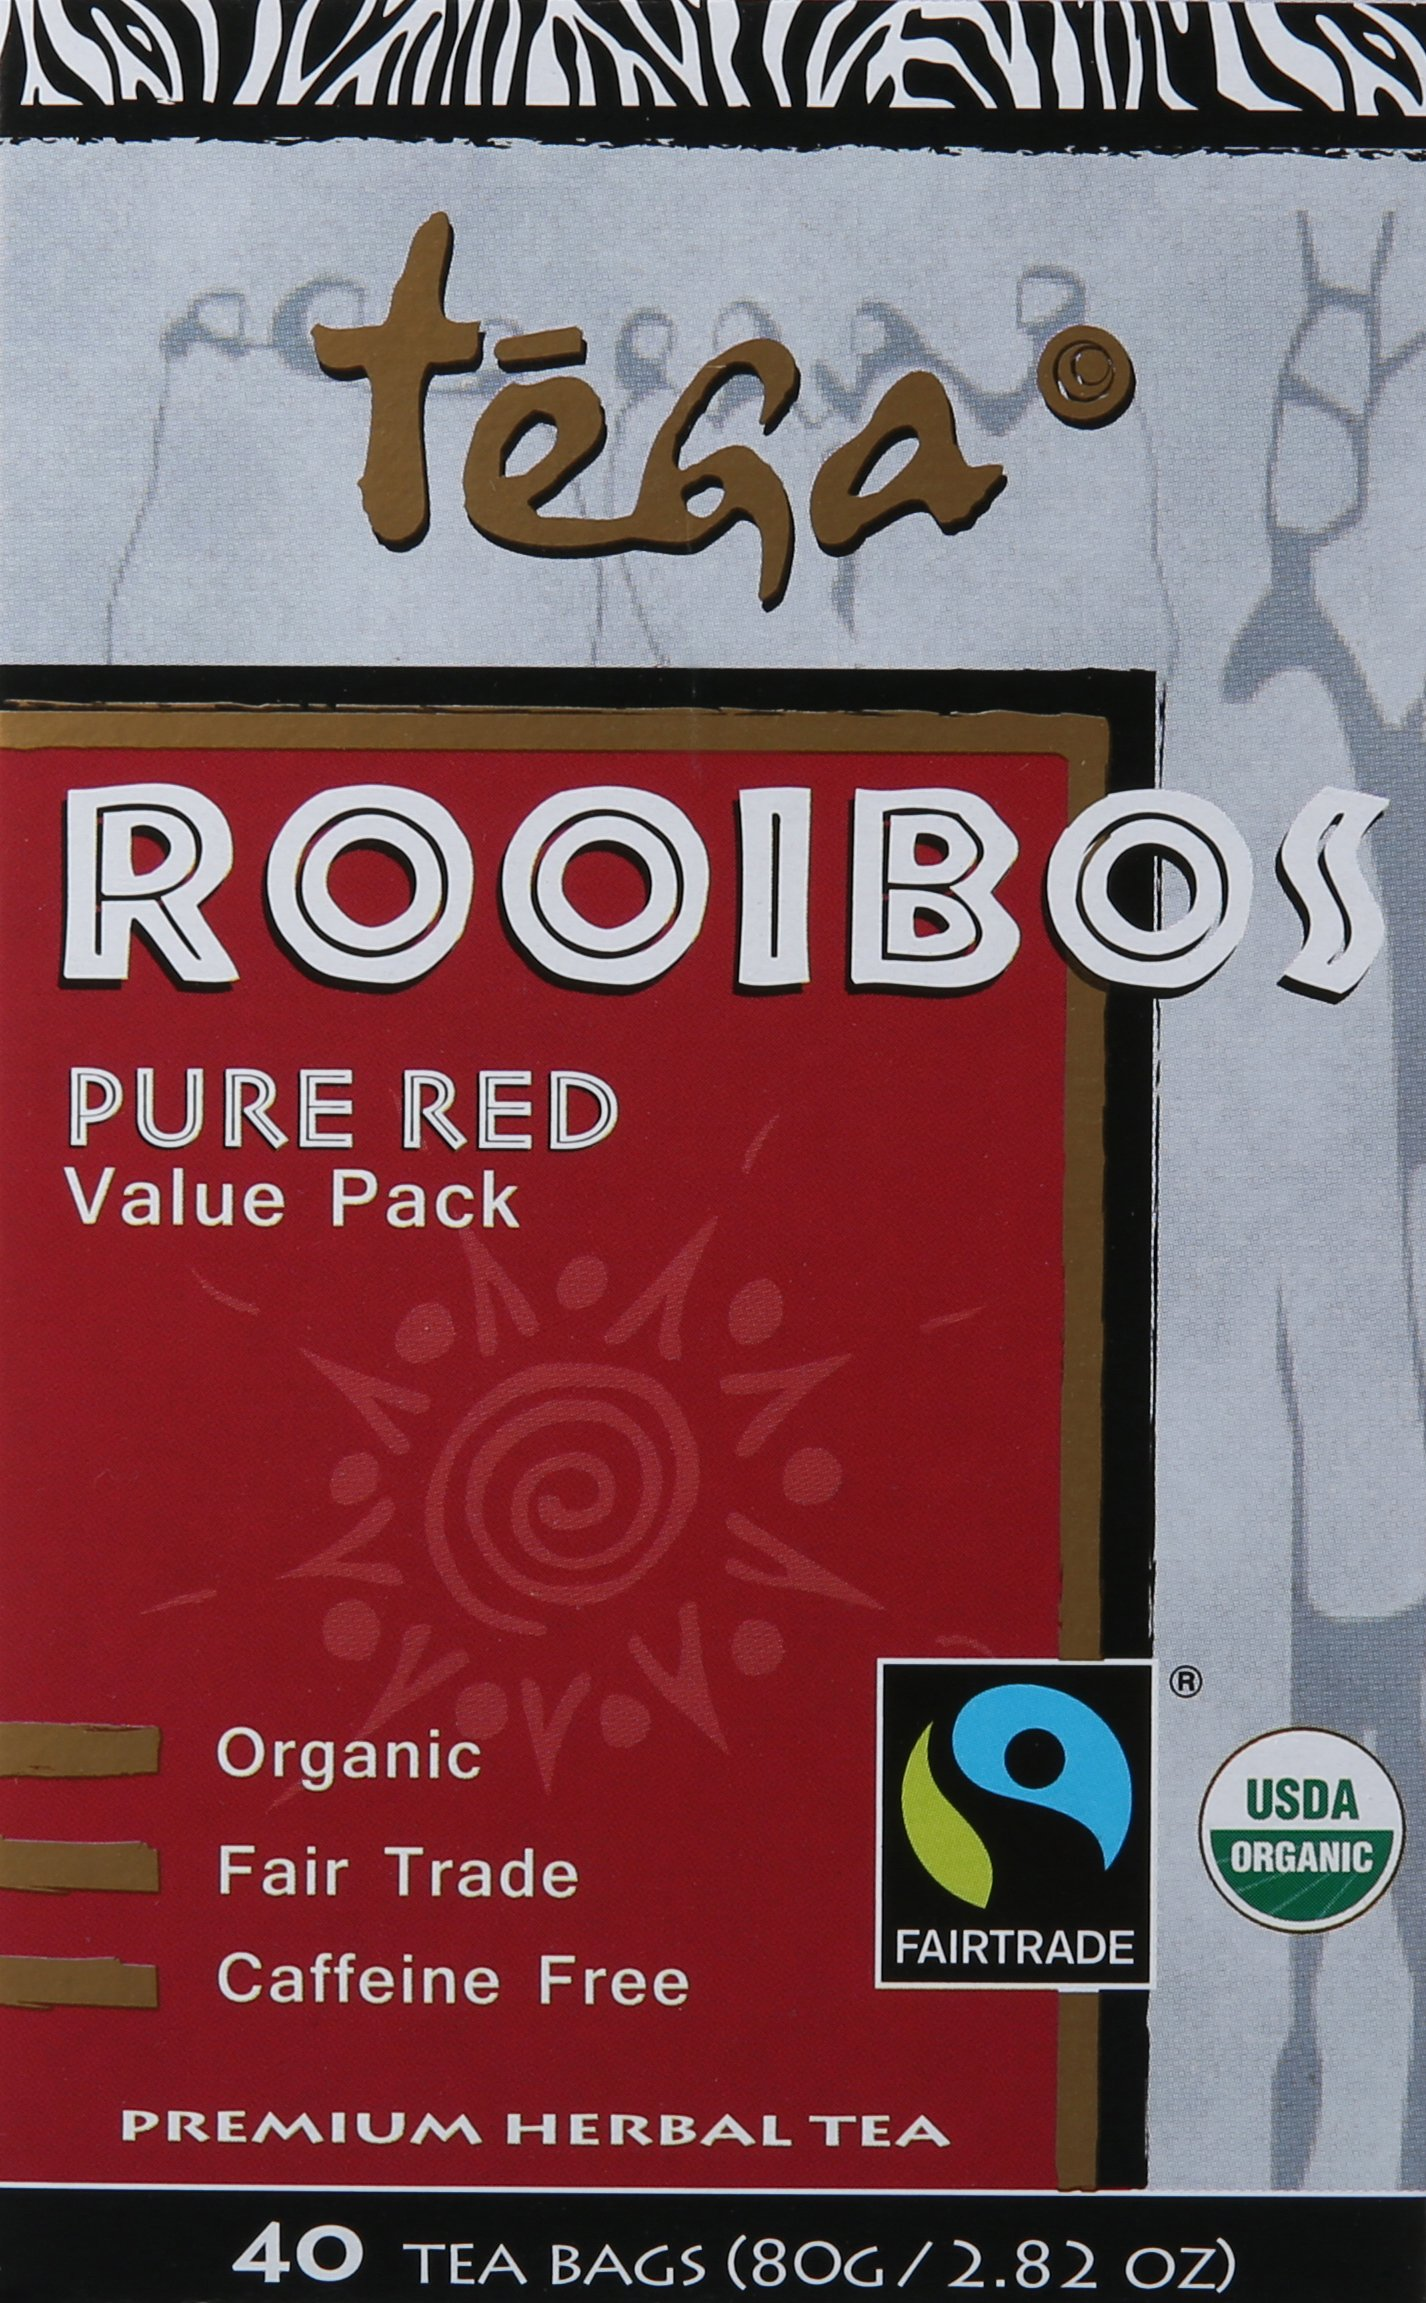 Tega Organic Rooibos Red Tea, 40-Count Tea Bags , 2.82 Oz (Pack of 4)